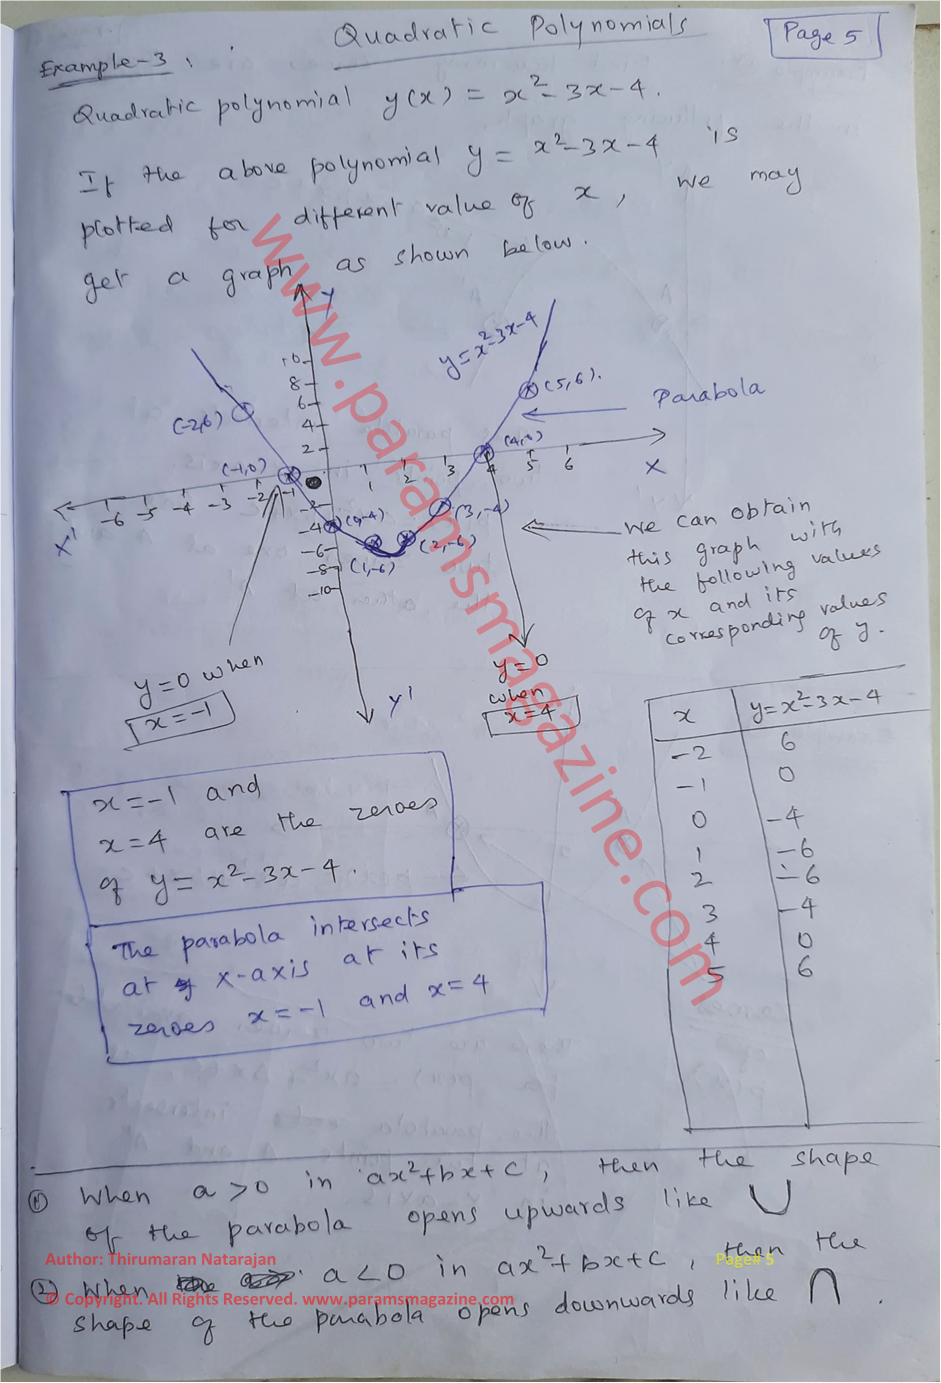 Class-10 - Polynomials - Notes - Page-5